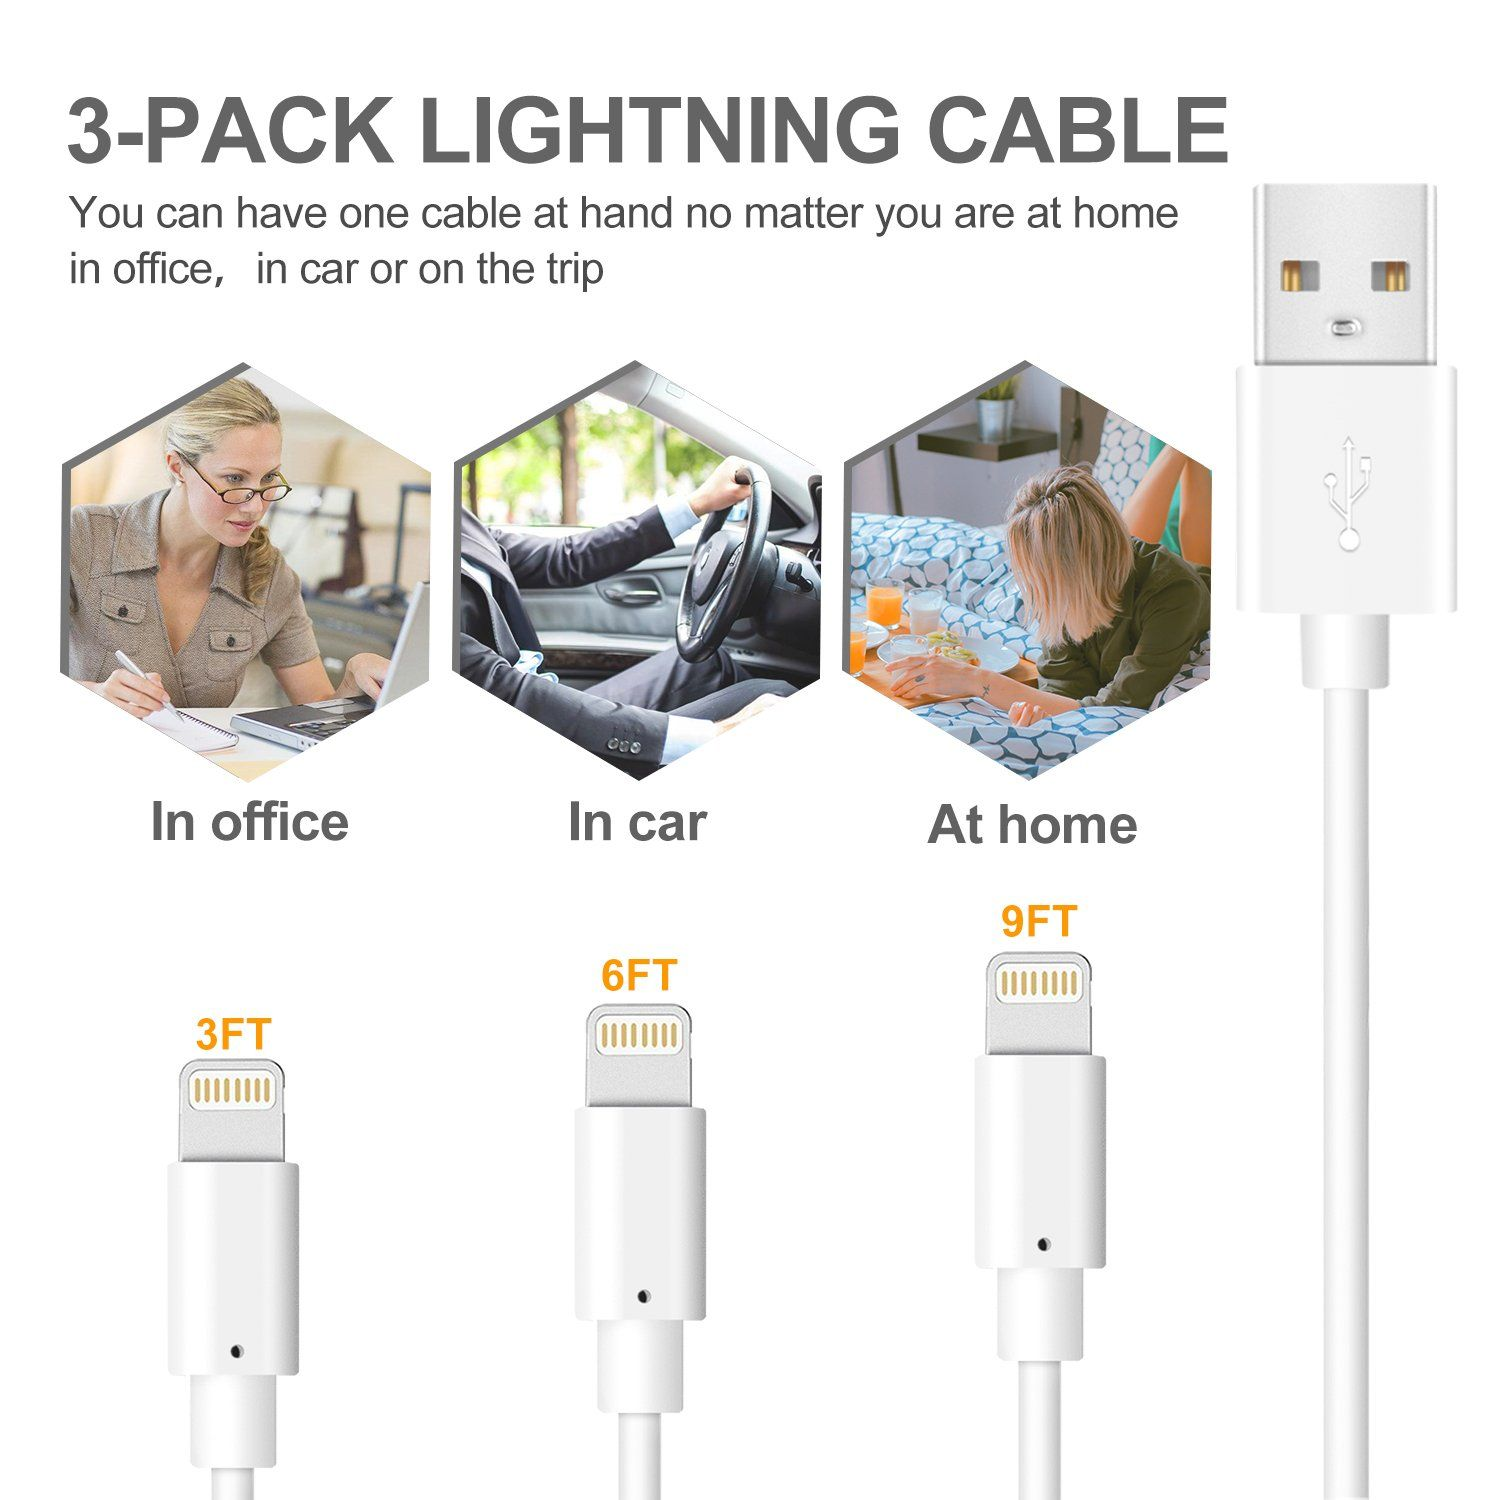 for Apple iPhone Xs,Xs Max,XR,X,8,8 Plus,7,7 Plus,6S,6S Plus,iPad Air,Mini,iPod Touch,Case Original Size 4 Pack 3FT USB Cable Infinite Power iPhone Charger Lightning Cable